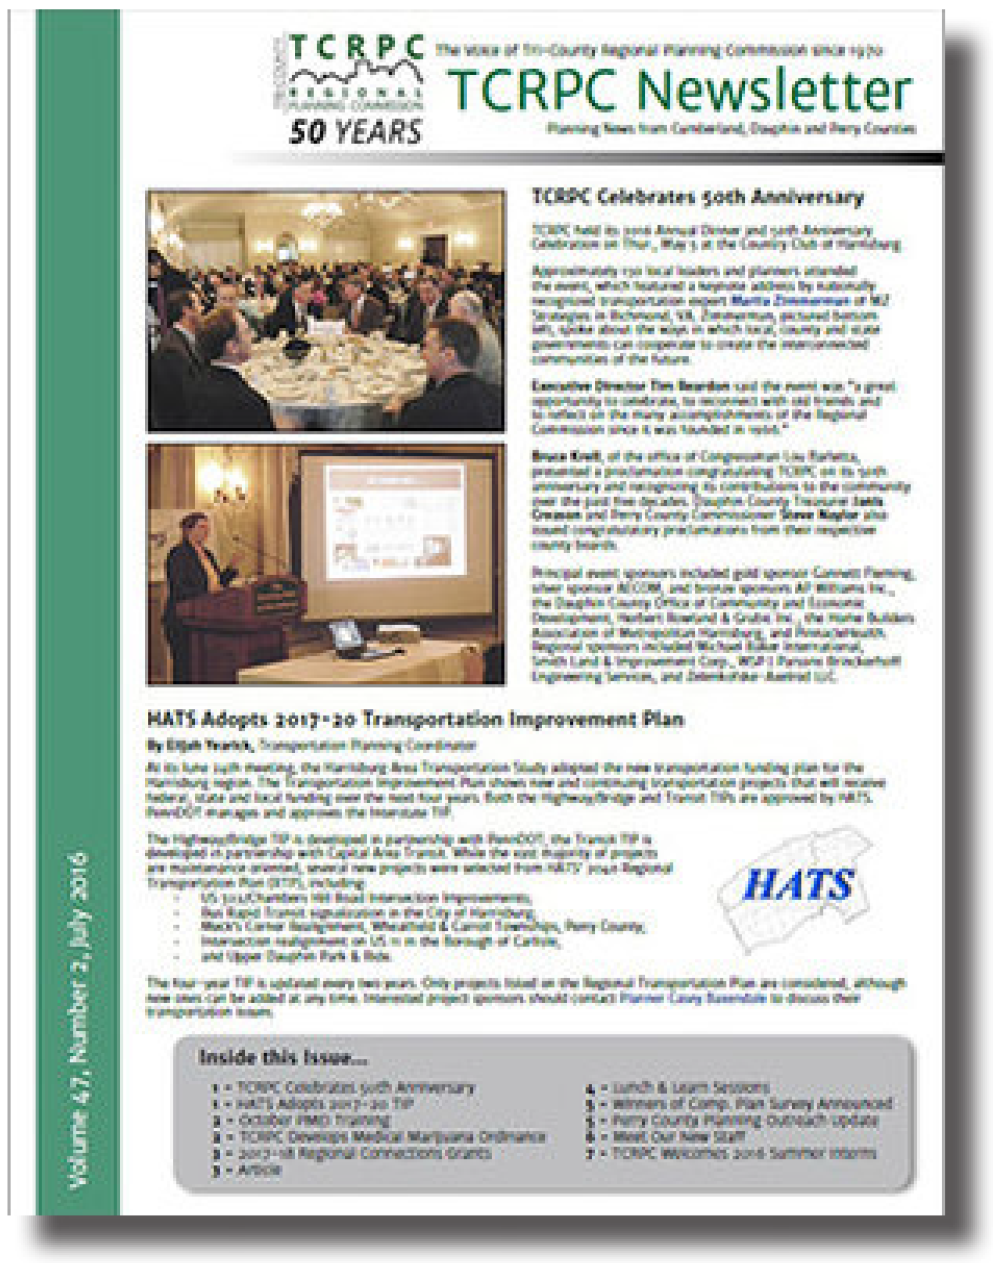 Sample newsletter cover